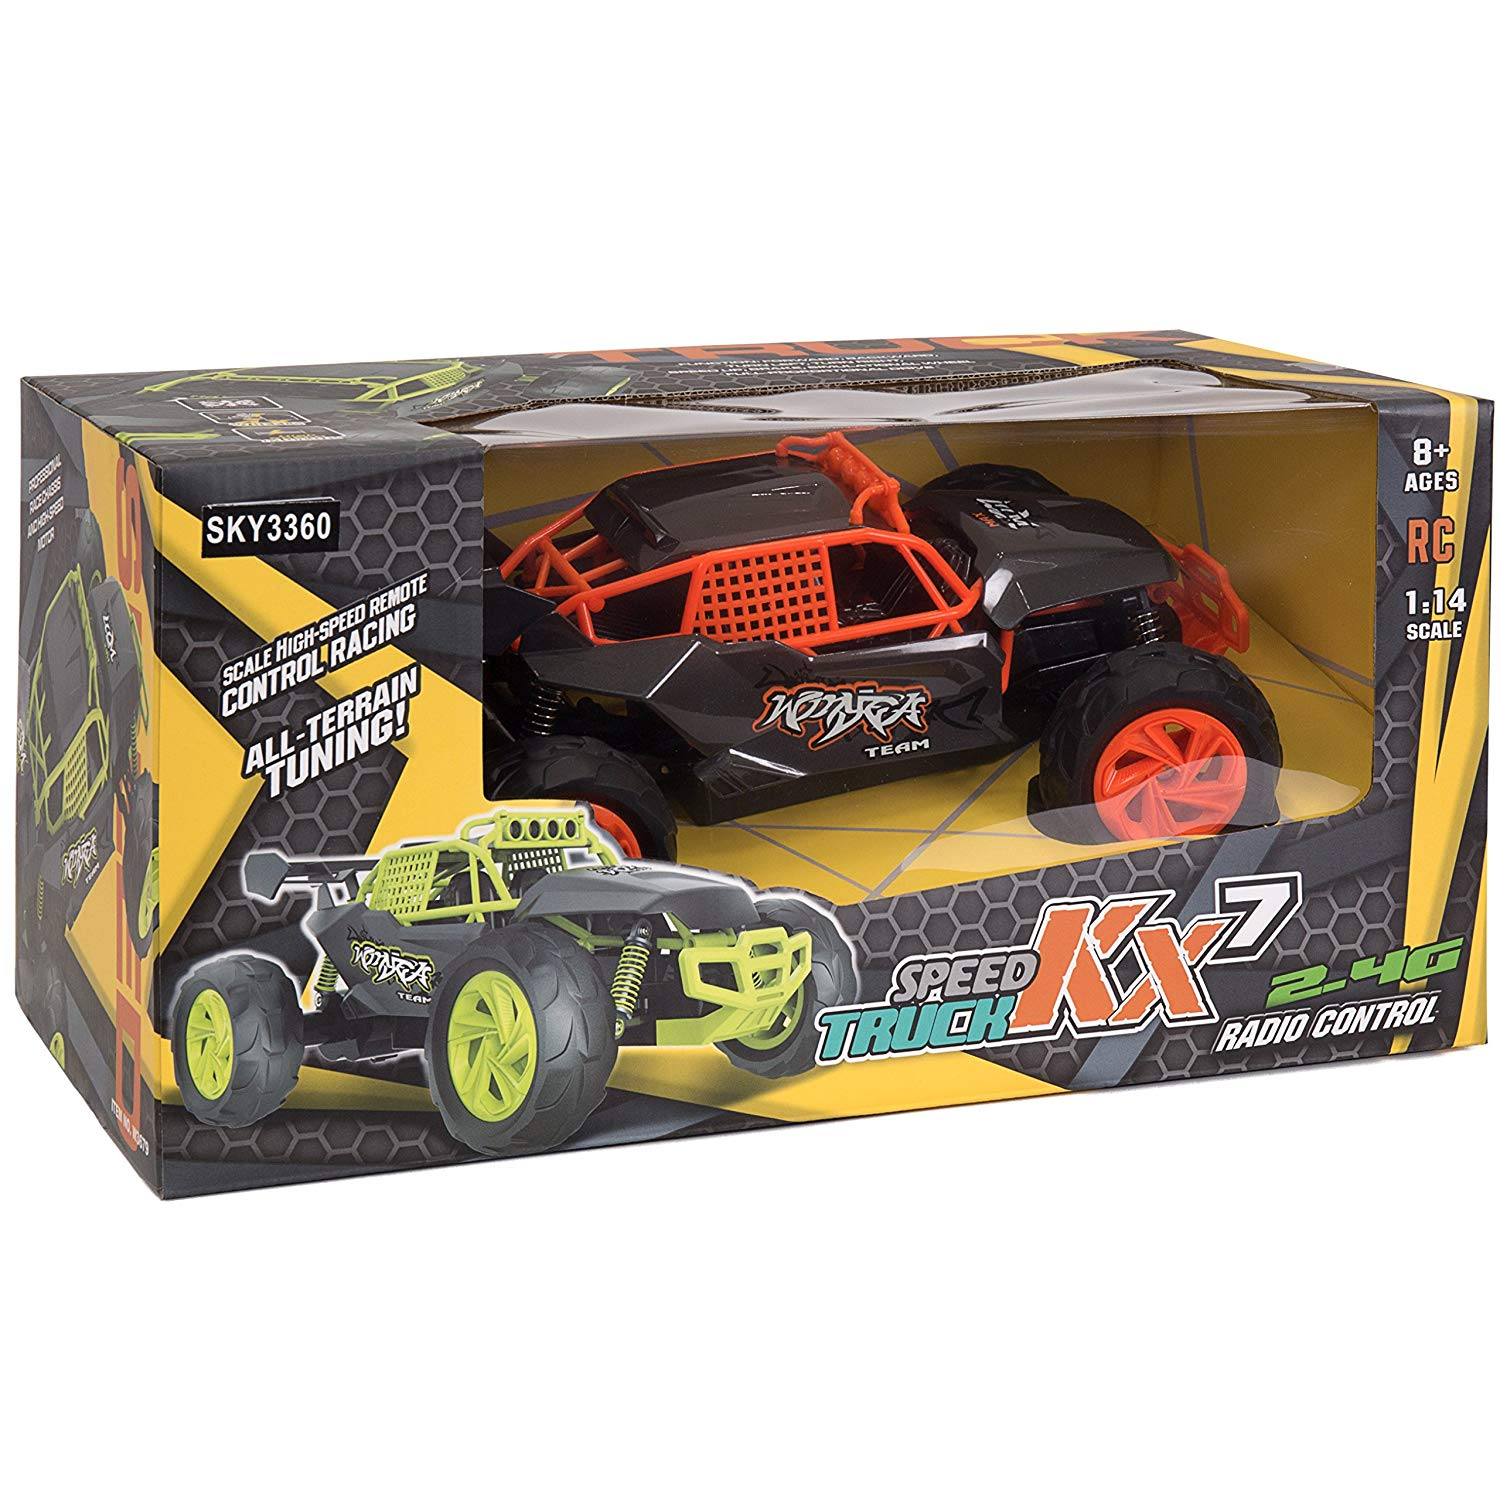 2.4G 1:14 High Speed Car with USB Charger (Black & Orange)